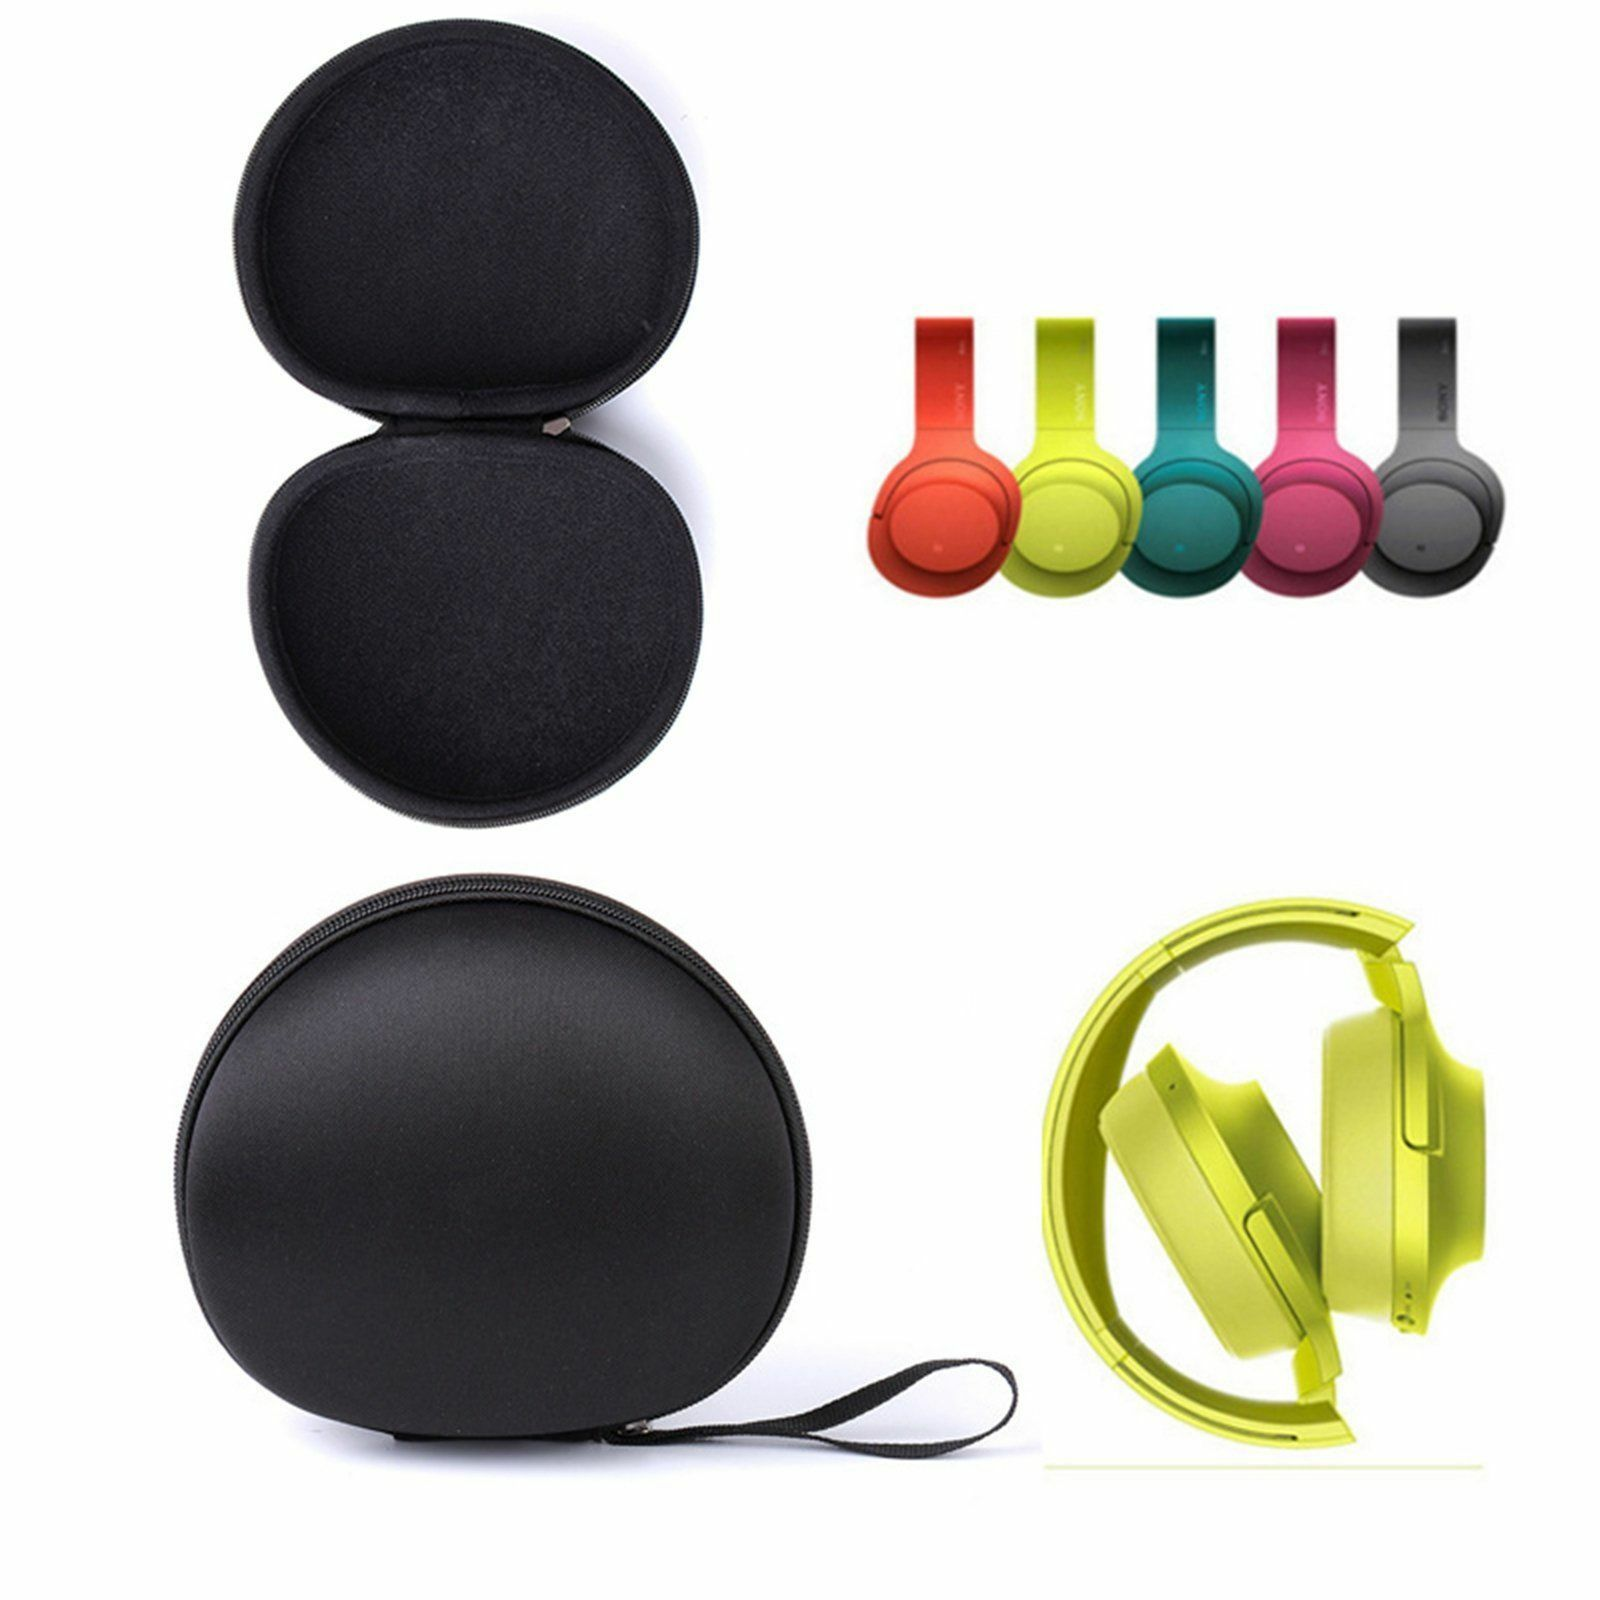 Headphone Earphone Case Headset Carry Pouch For <font><b>Sony</b></font> <font><b>MDR</b></font>-<font><b>100ABN</b></font> AAP 600A WH-H800 H900N Storage Bag Headphone Carrying Pouch image